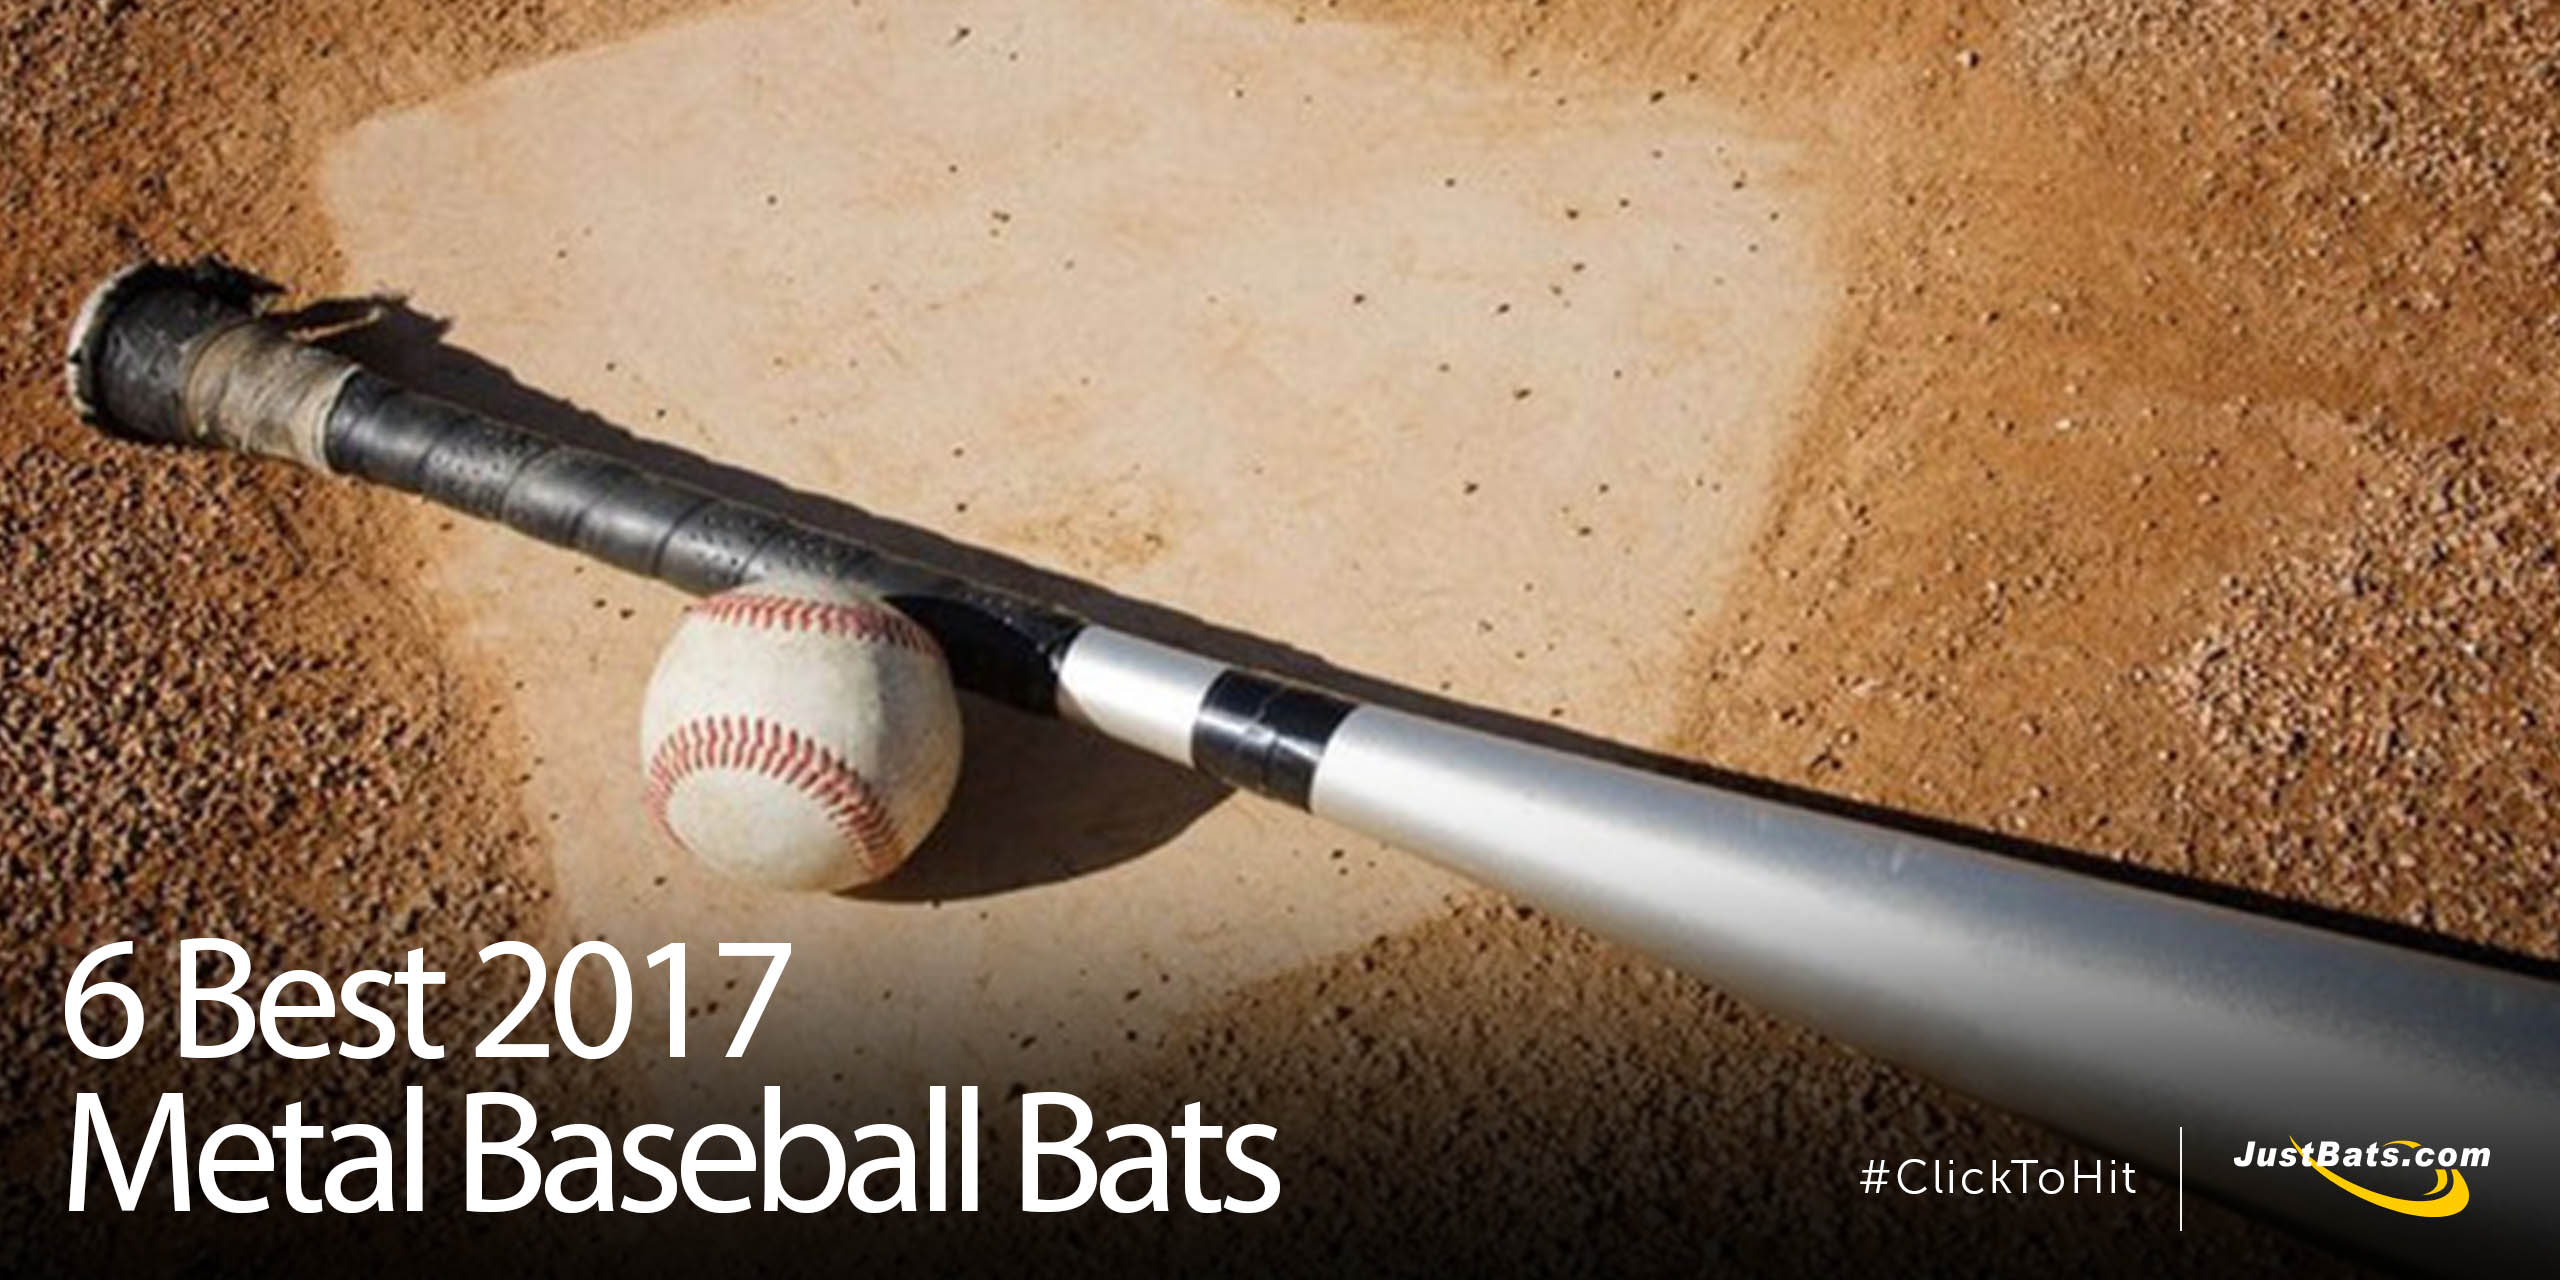 6 Best 2017 Metal Baseball Bats